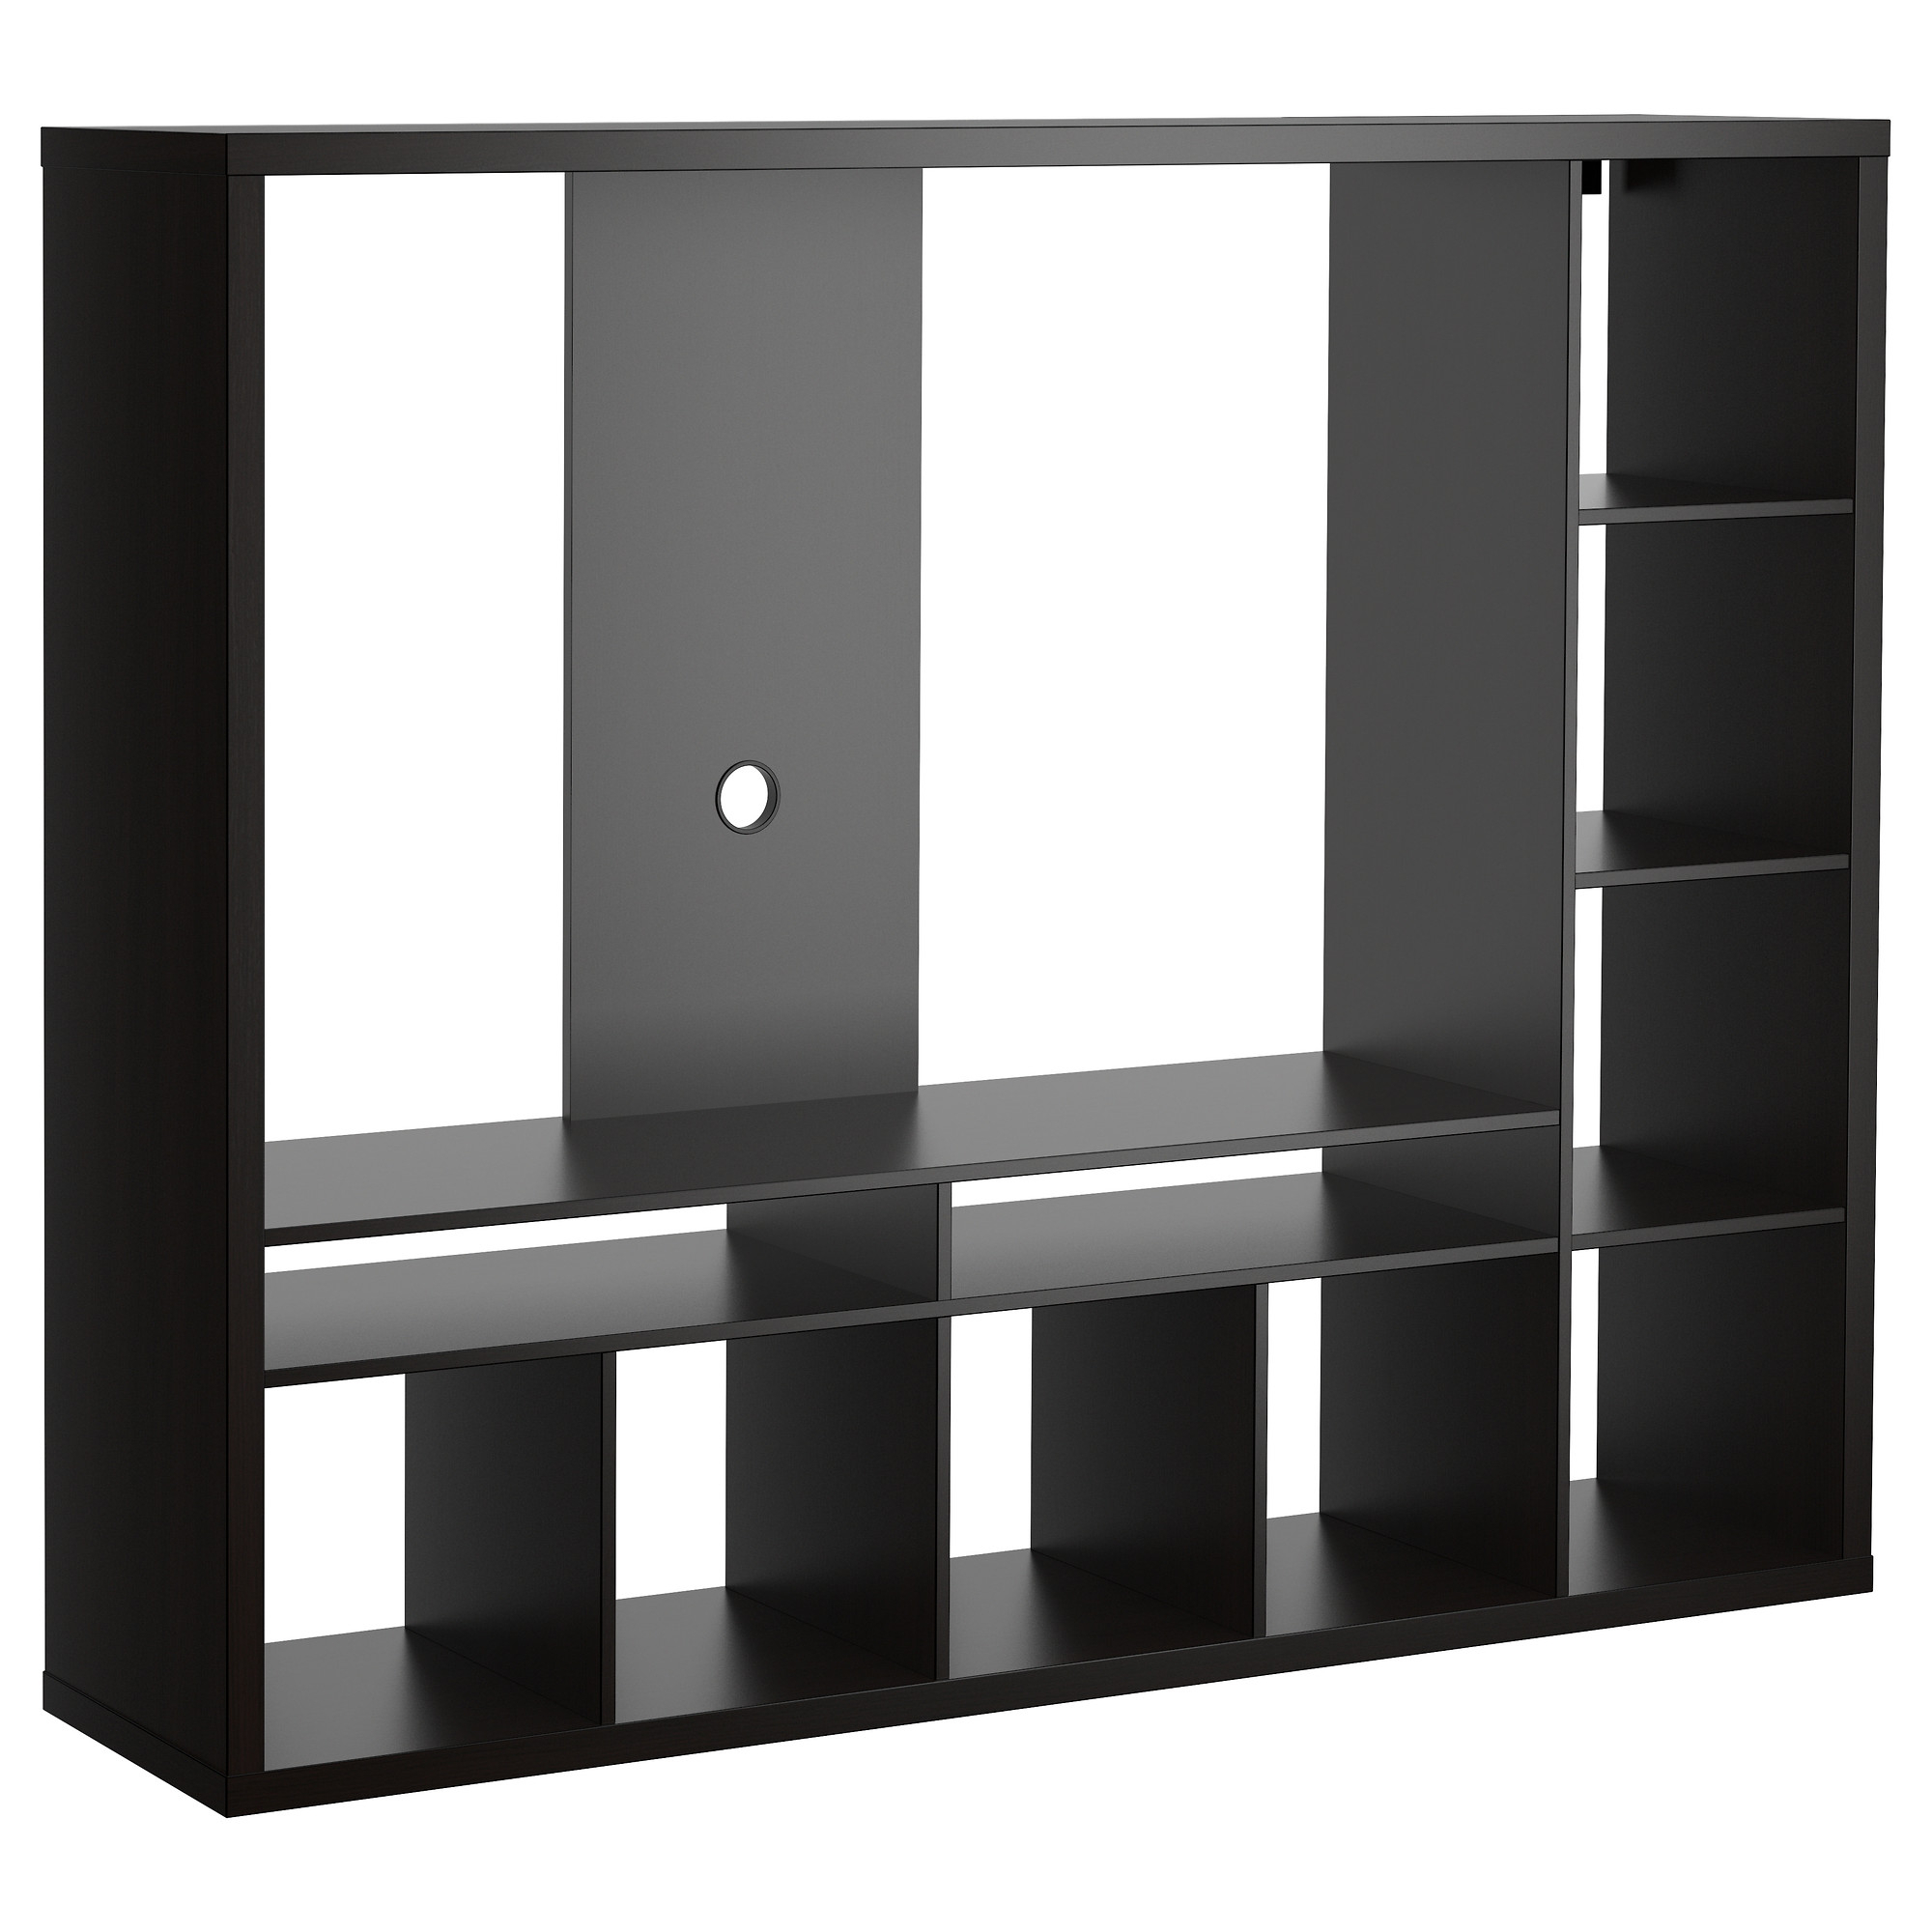 Playroom Tv Stands Intended For 2017 Media Console Modern Entertainment Center Ikea Tv Stand Design (Gallery 8 of 20)